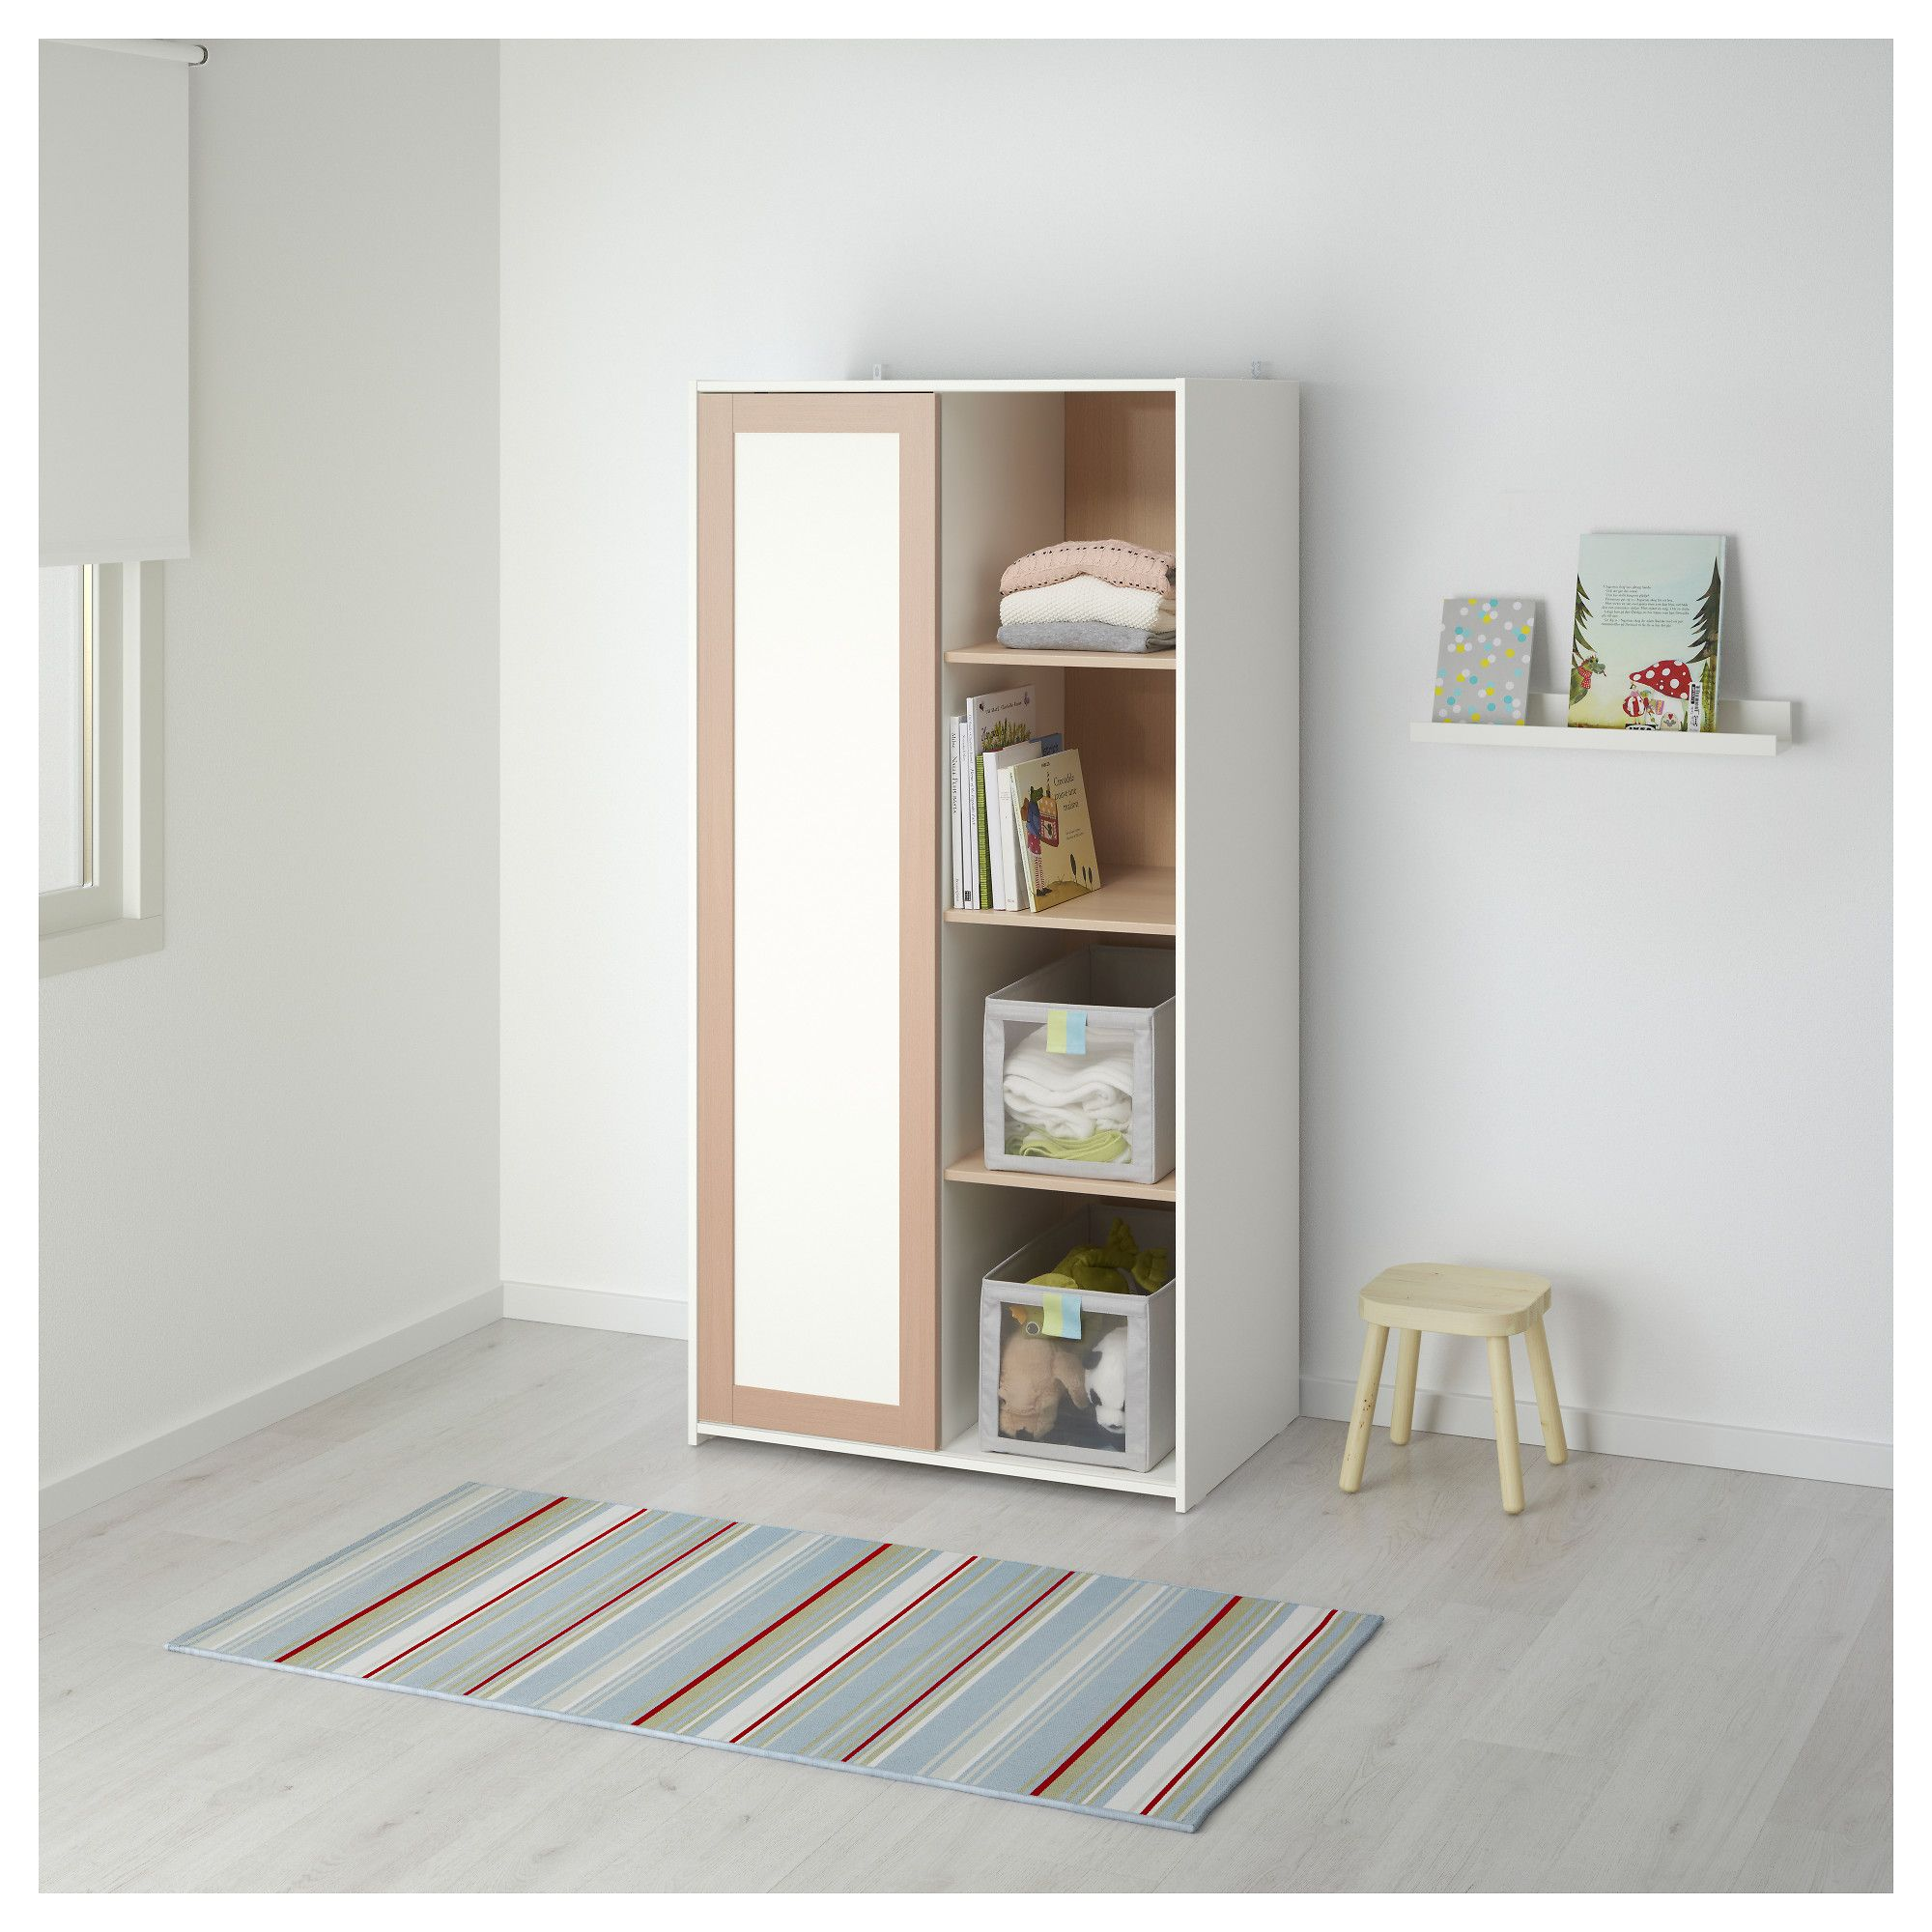 ikea sniglar wardrobe beechwhite 81x50x163 cm the wardrobe fits perfectly into small spaces as